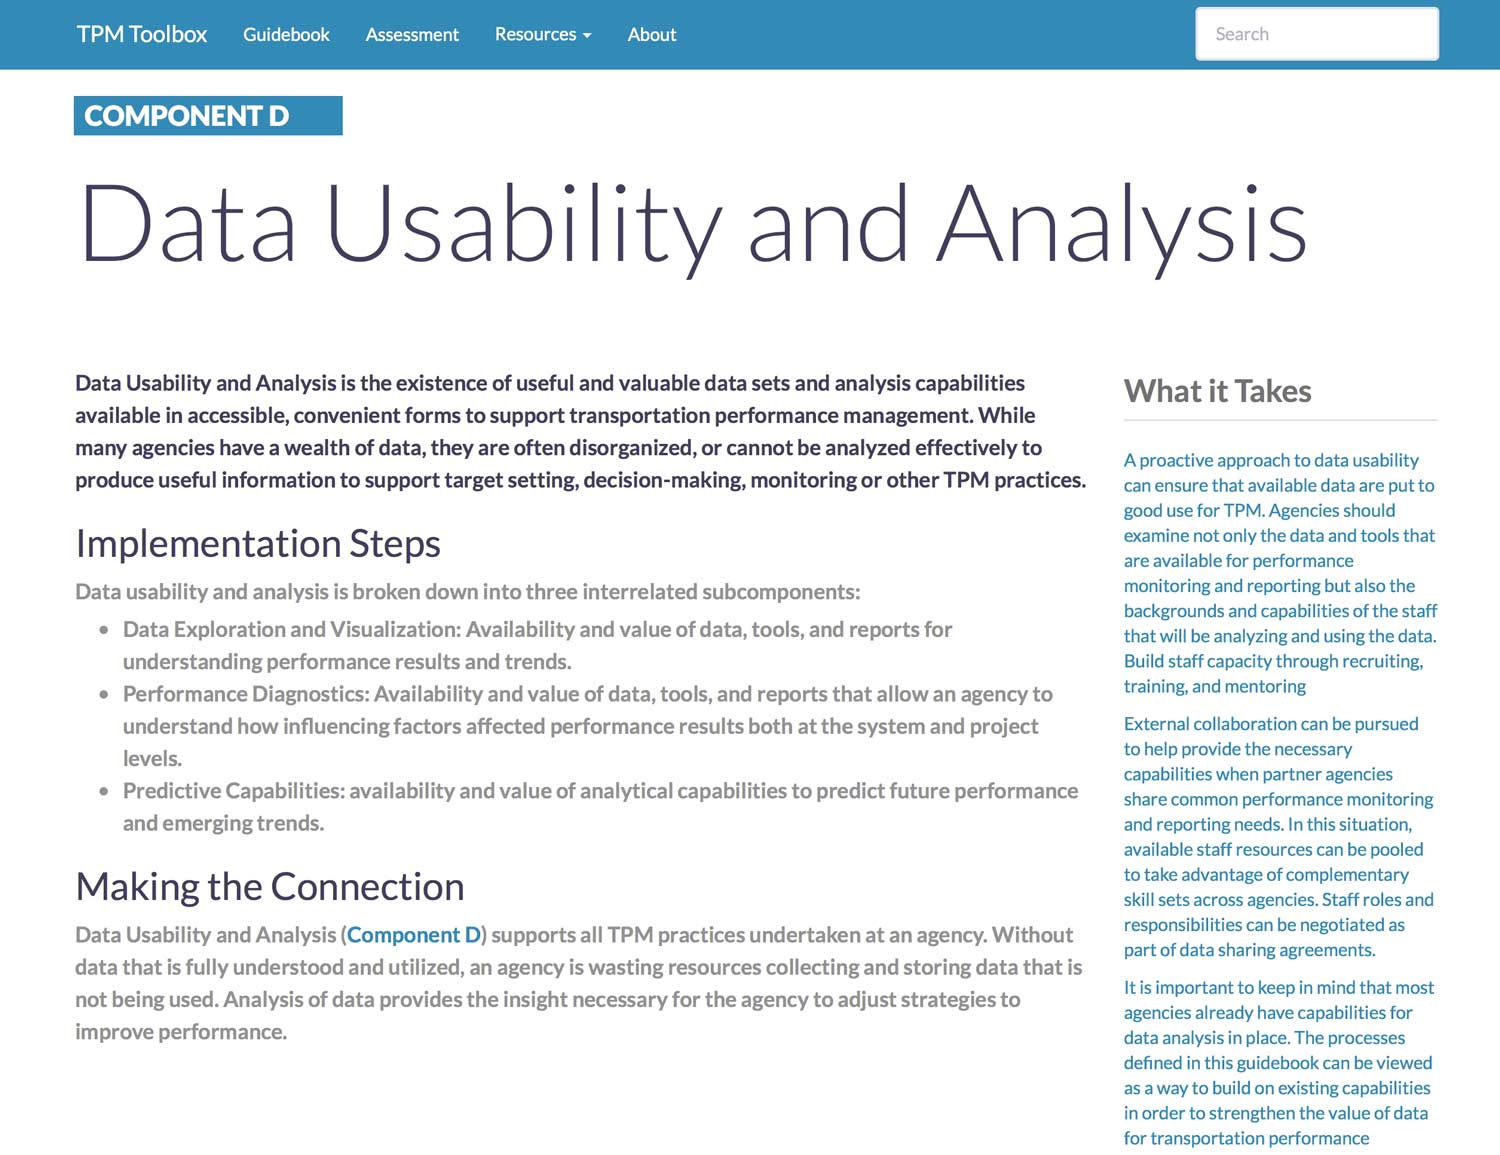 Thumbnail image of Component D Summary webpage. Data Usability and Analysis is the existence of useful and valuable data sets and analysis capabilities available in accessible, convenient forms to support transportation performance management.